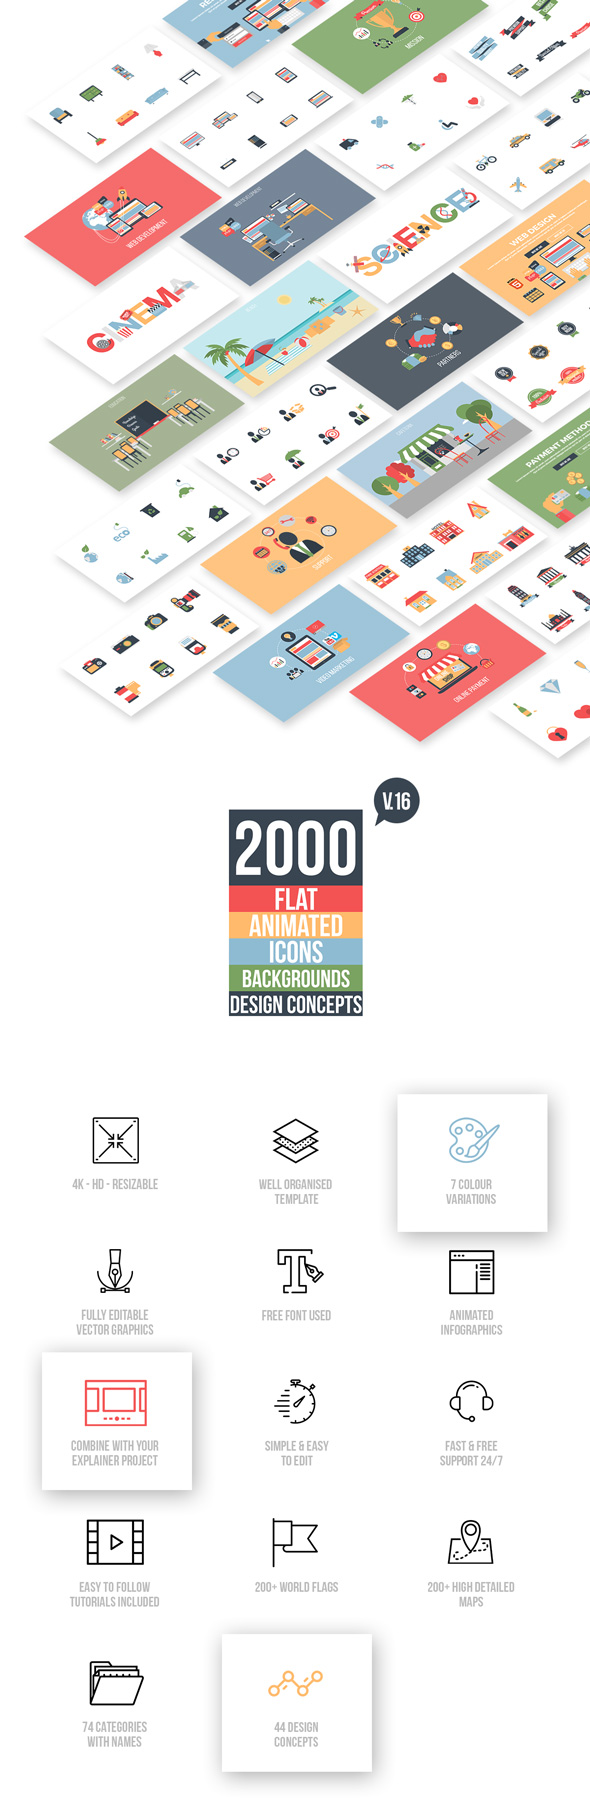 Flat Animated Icons Library - 8